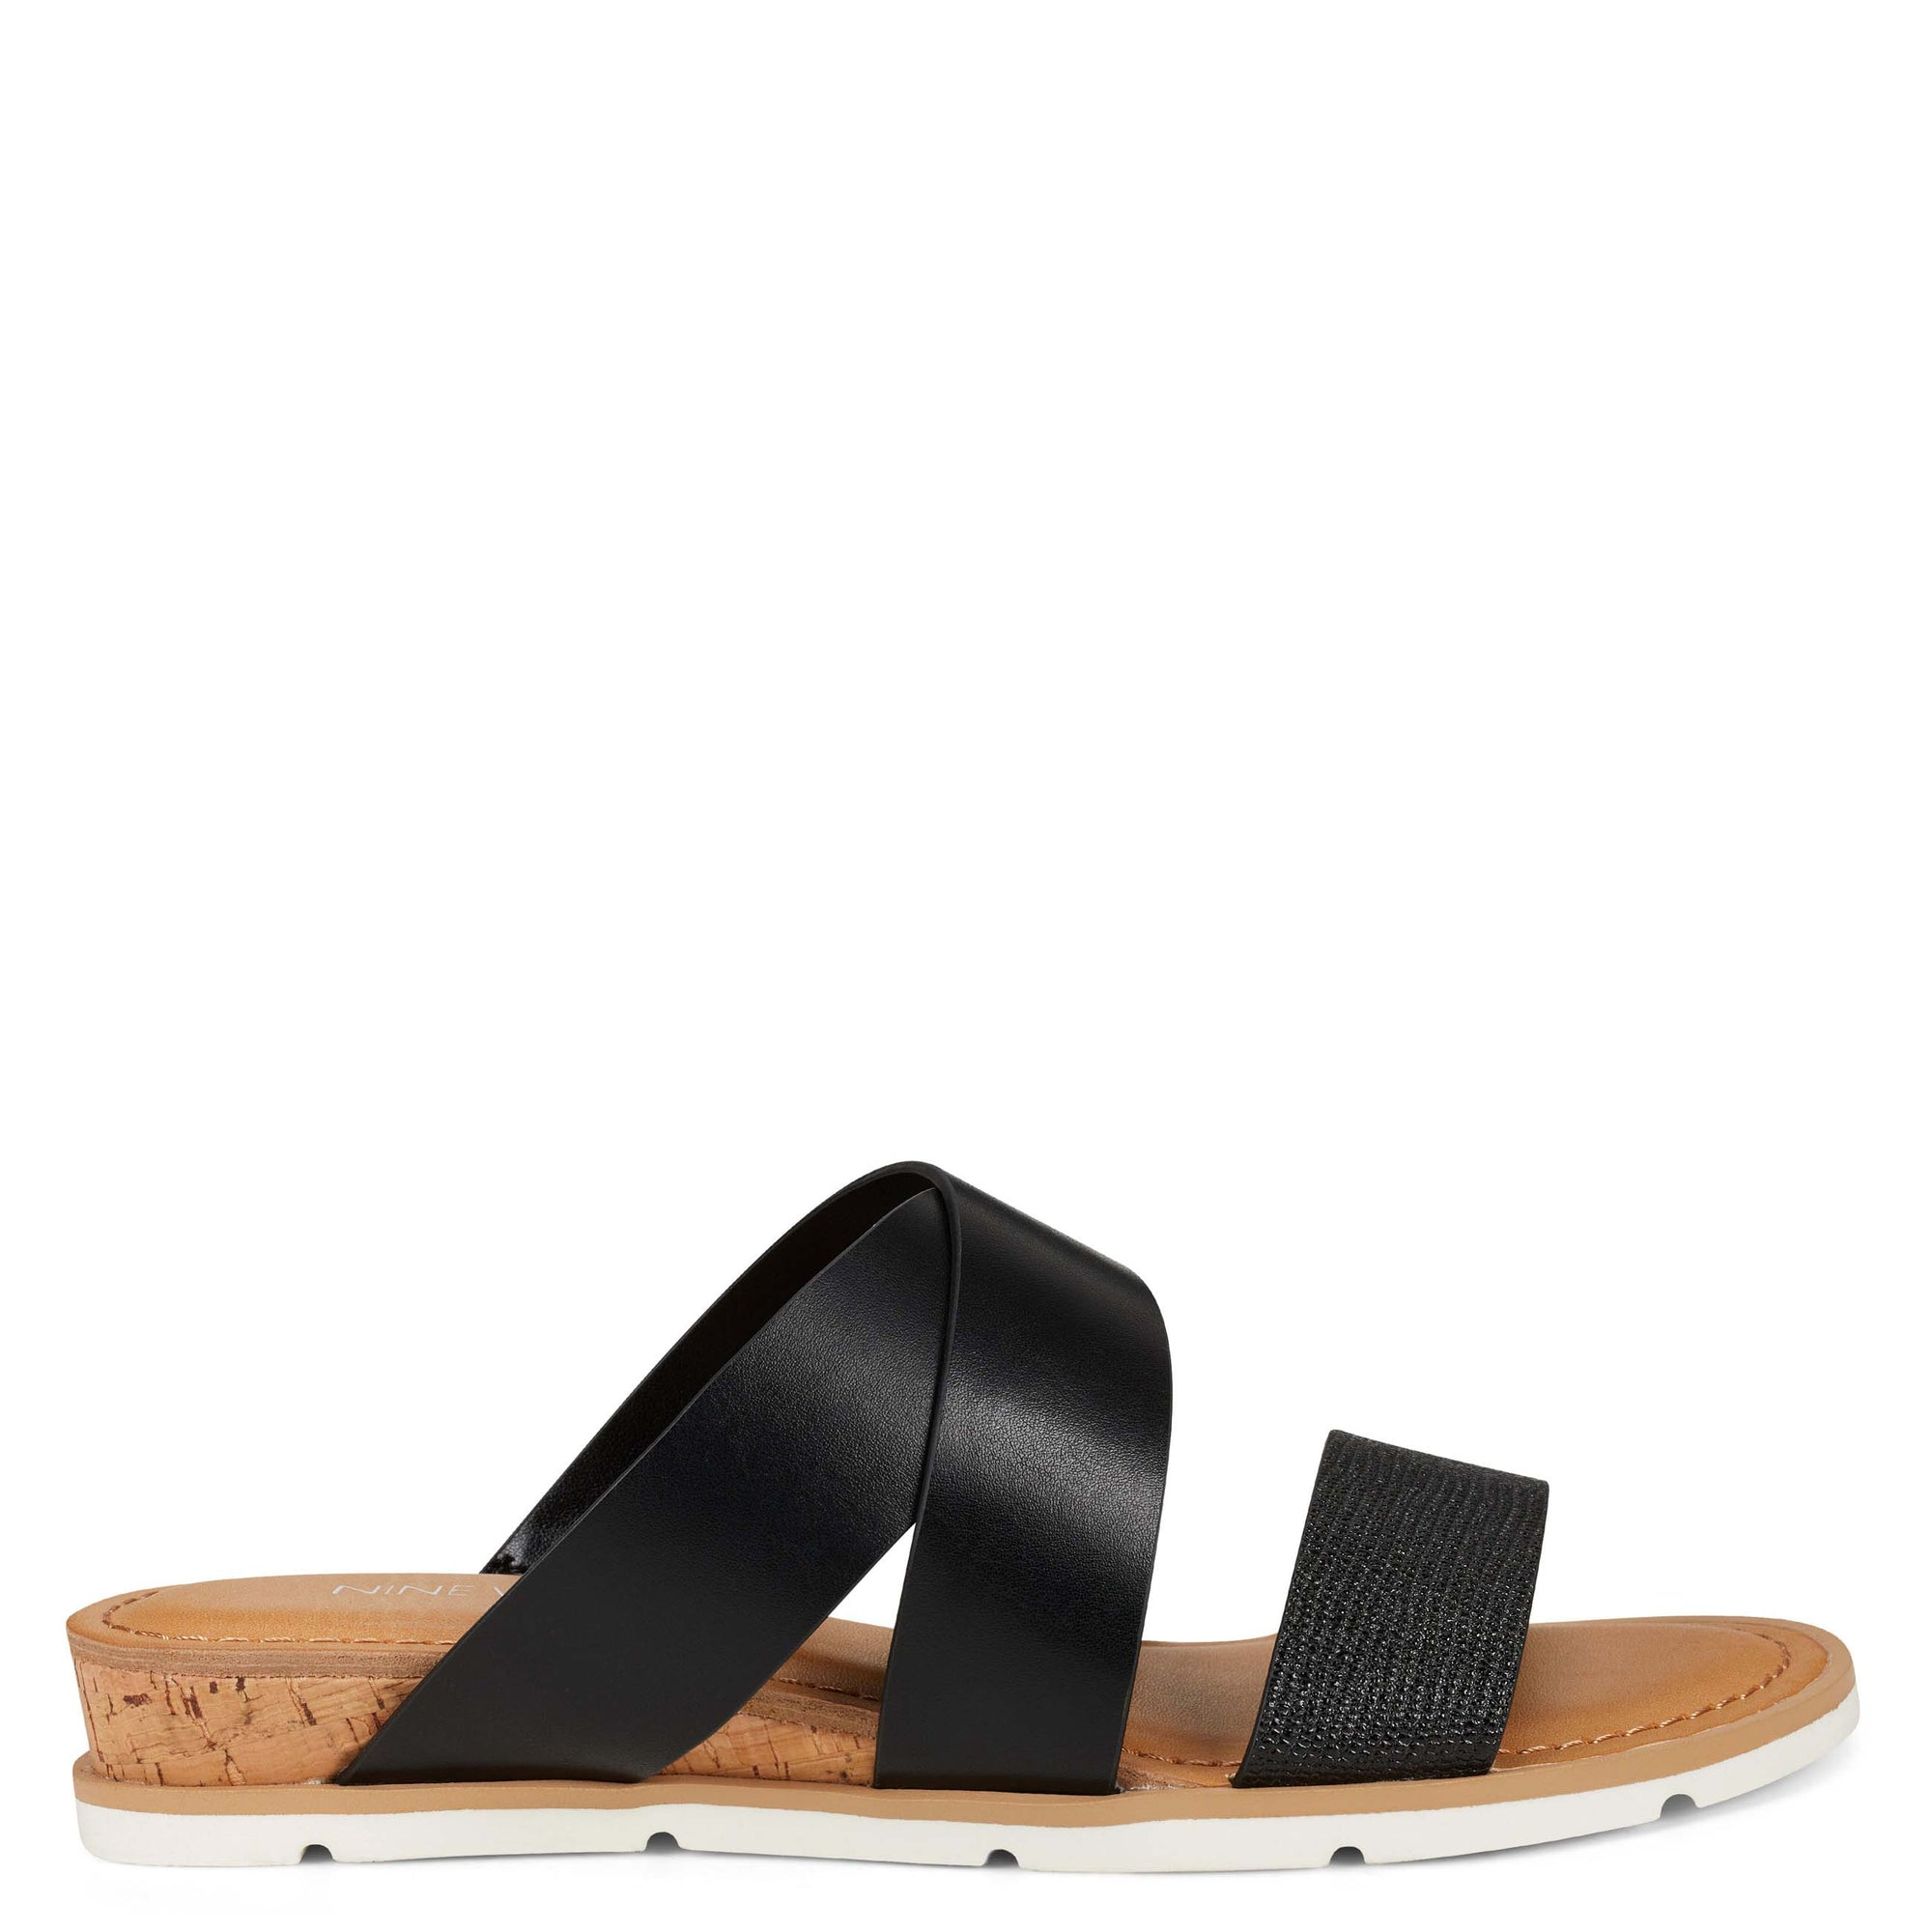 Desiree Slide Sandals